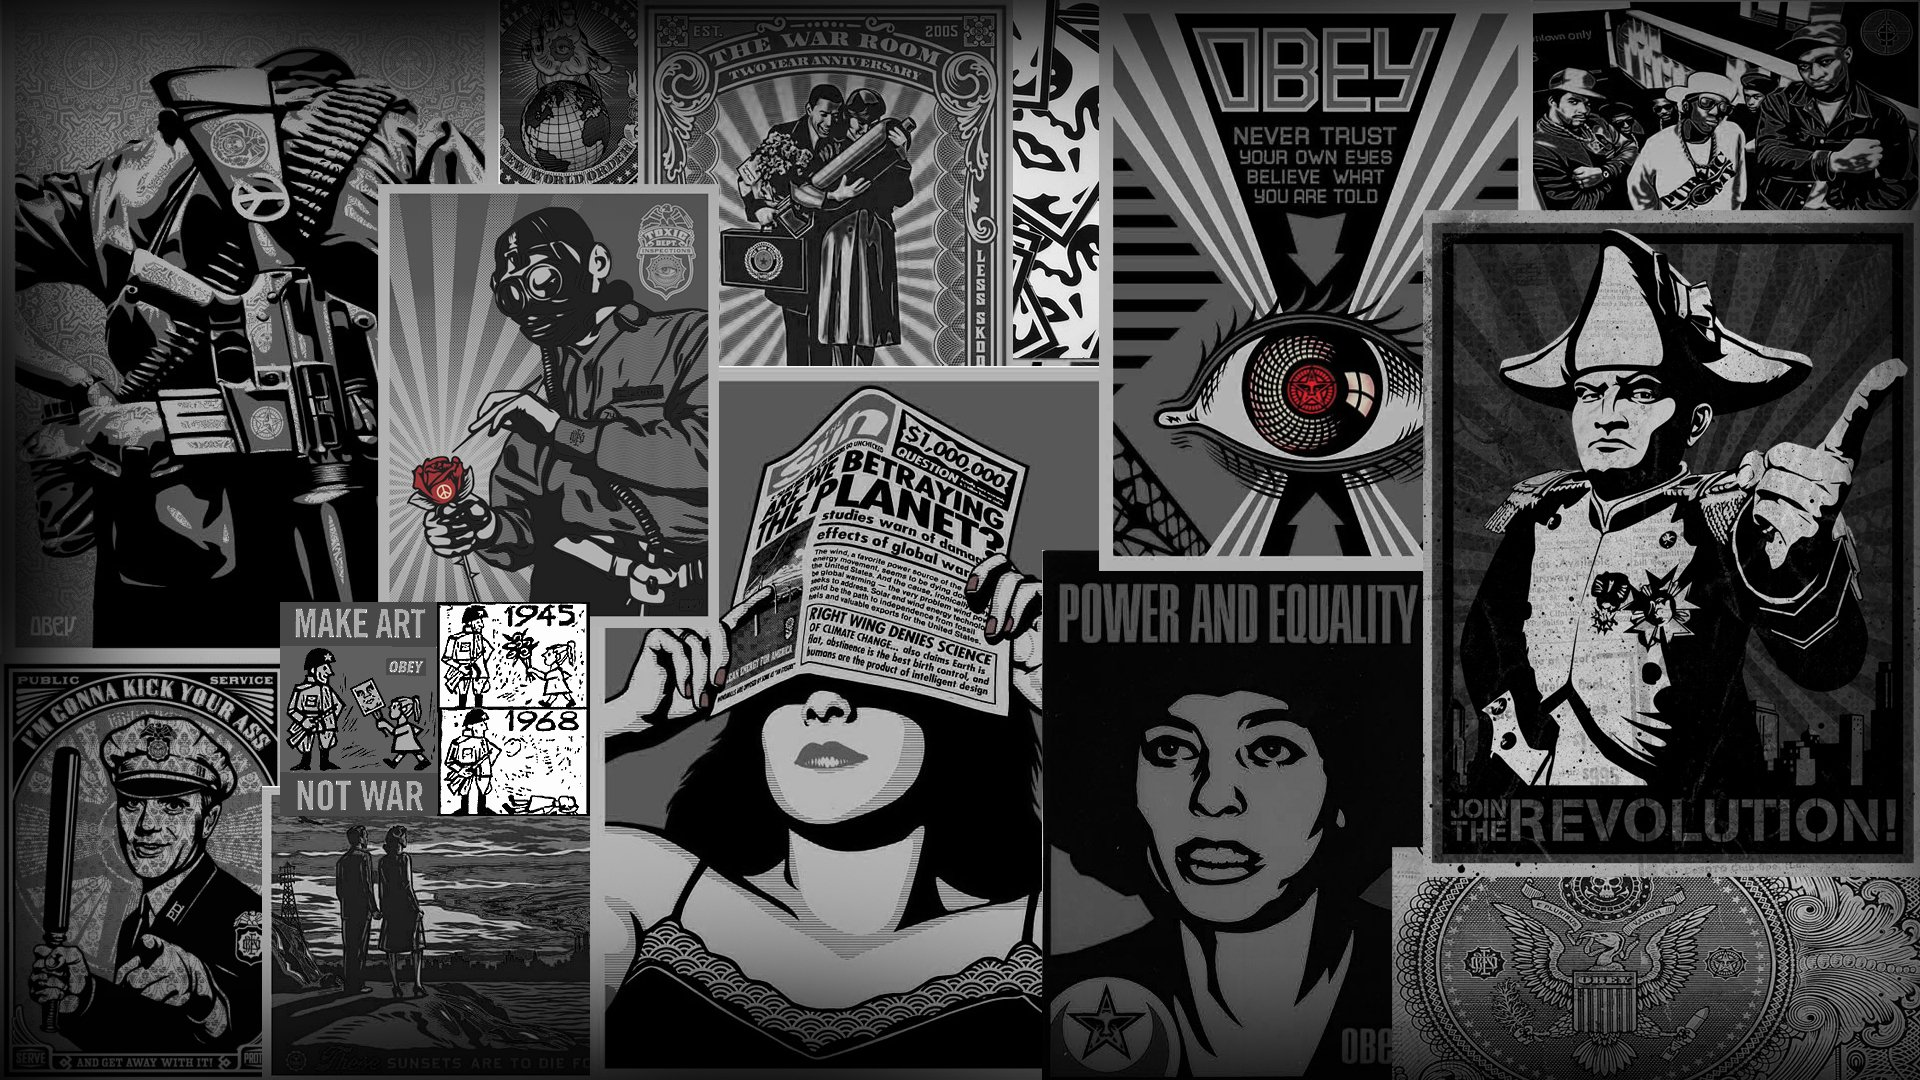 Obey Hd wallpaper   997937 1920x1080